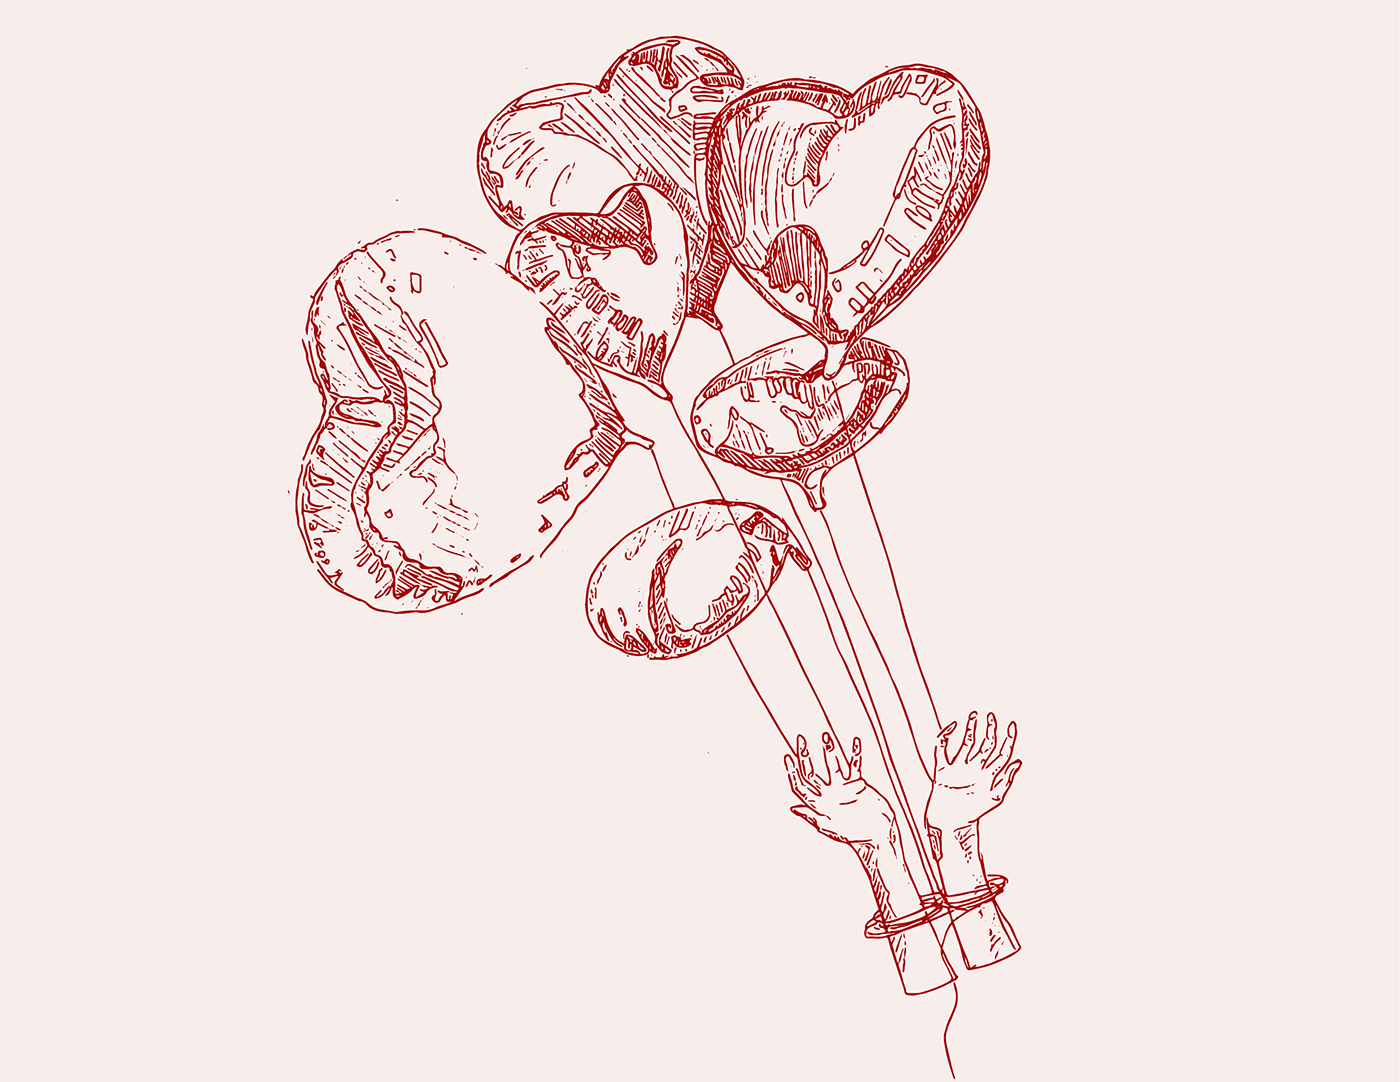 Hands being carried away by heart shaped balloons